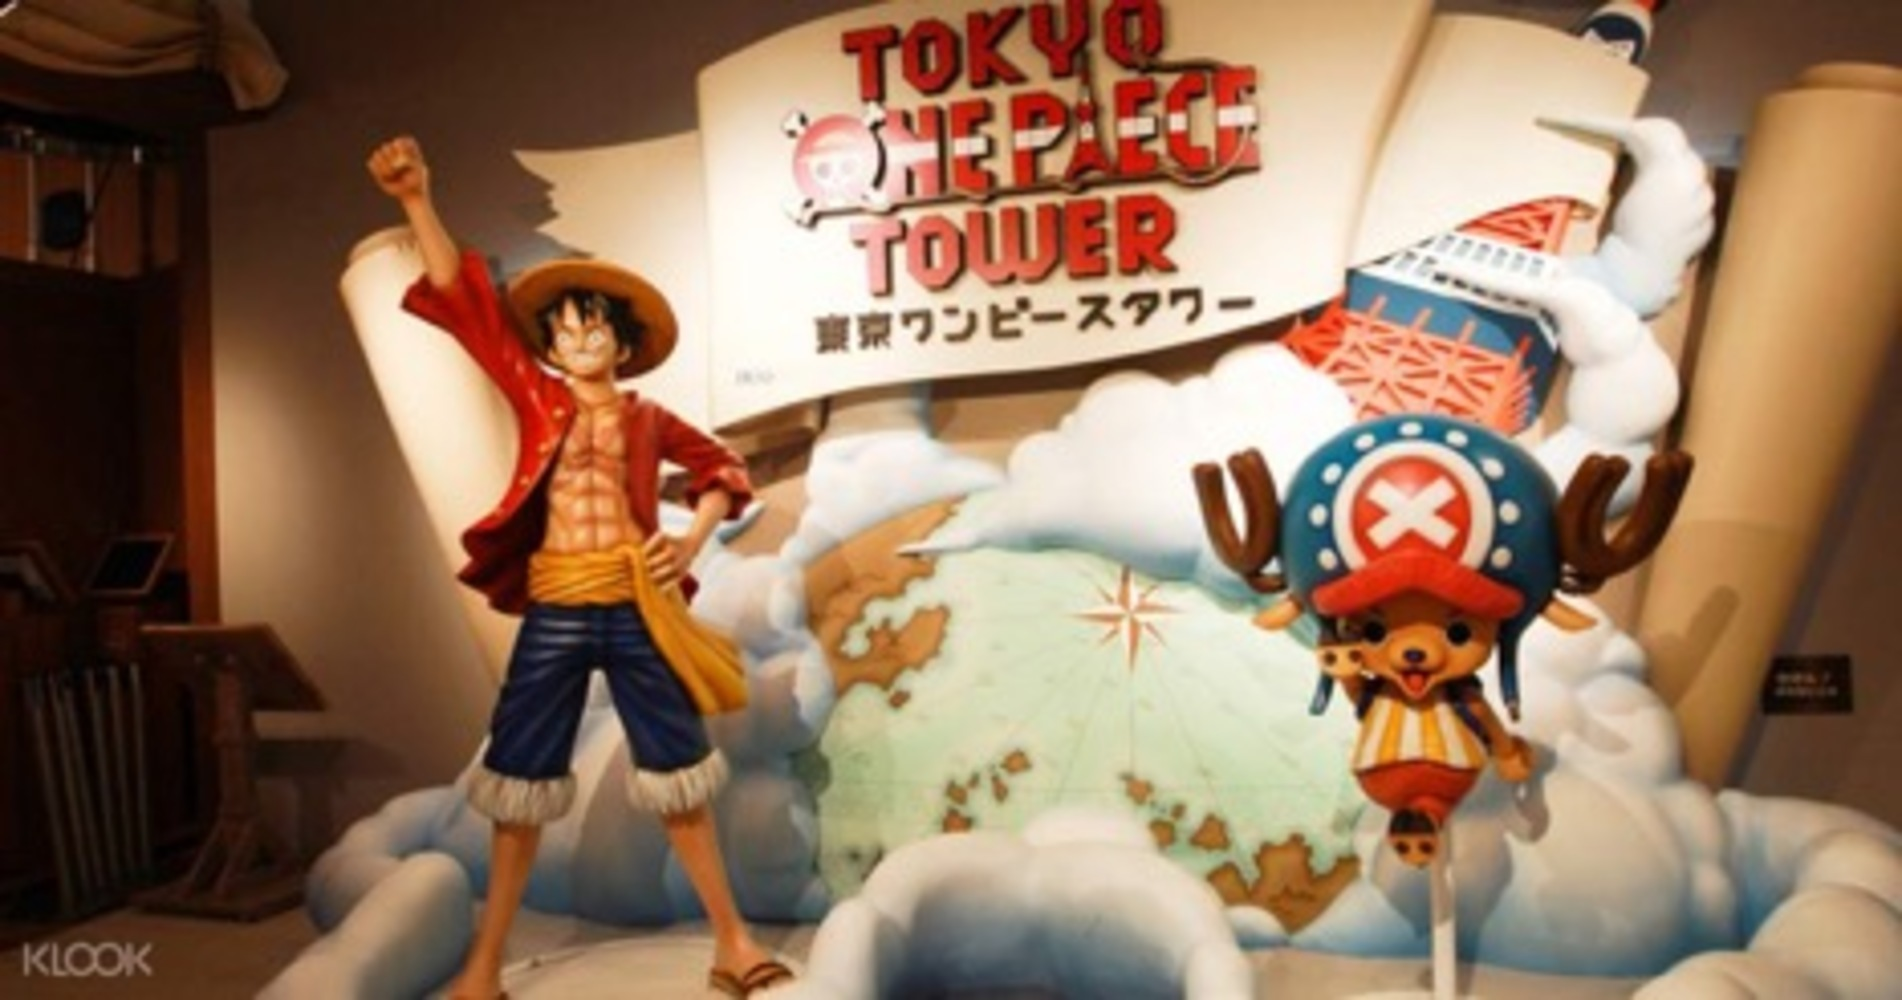 Tokyo One Piece Tower (東京ワンピースタワー)